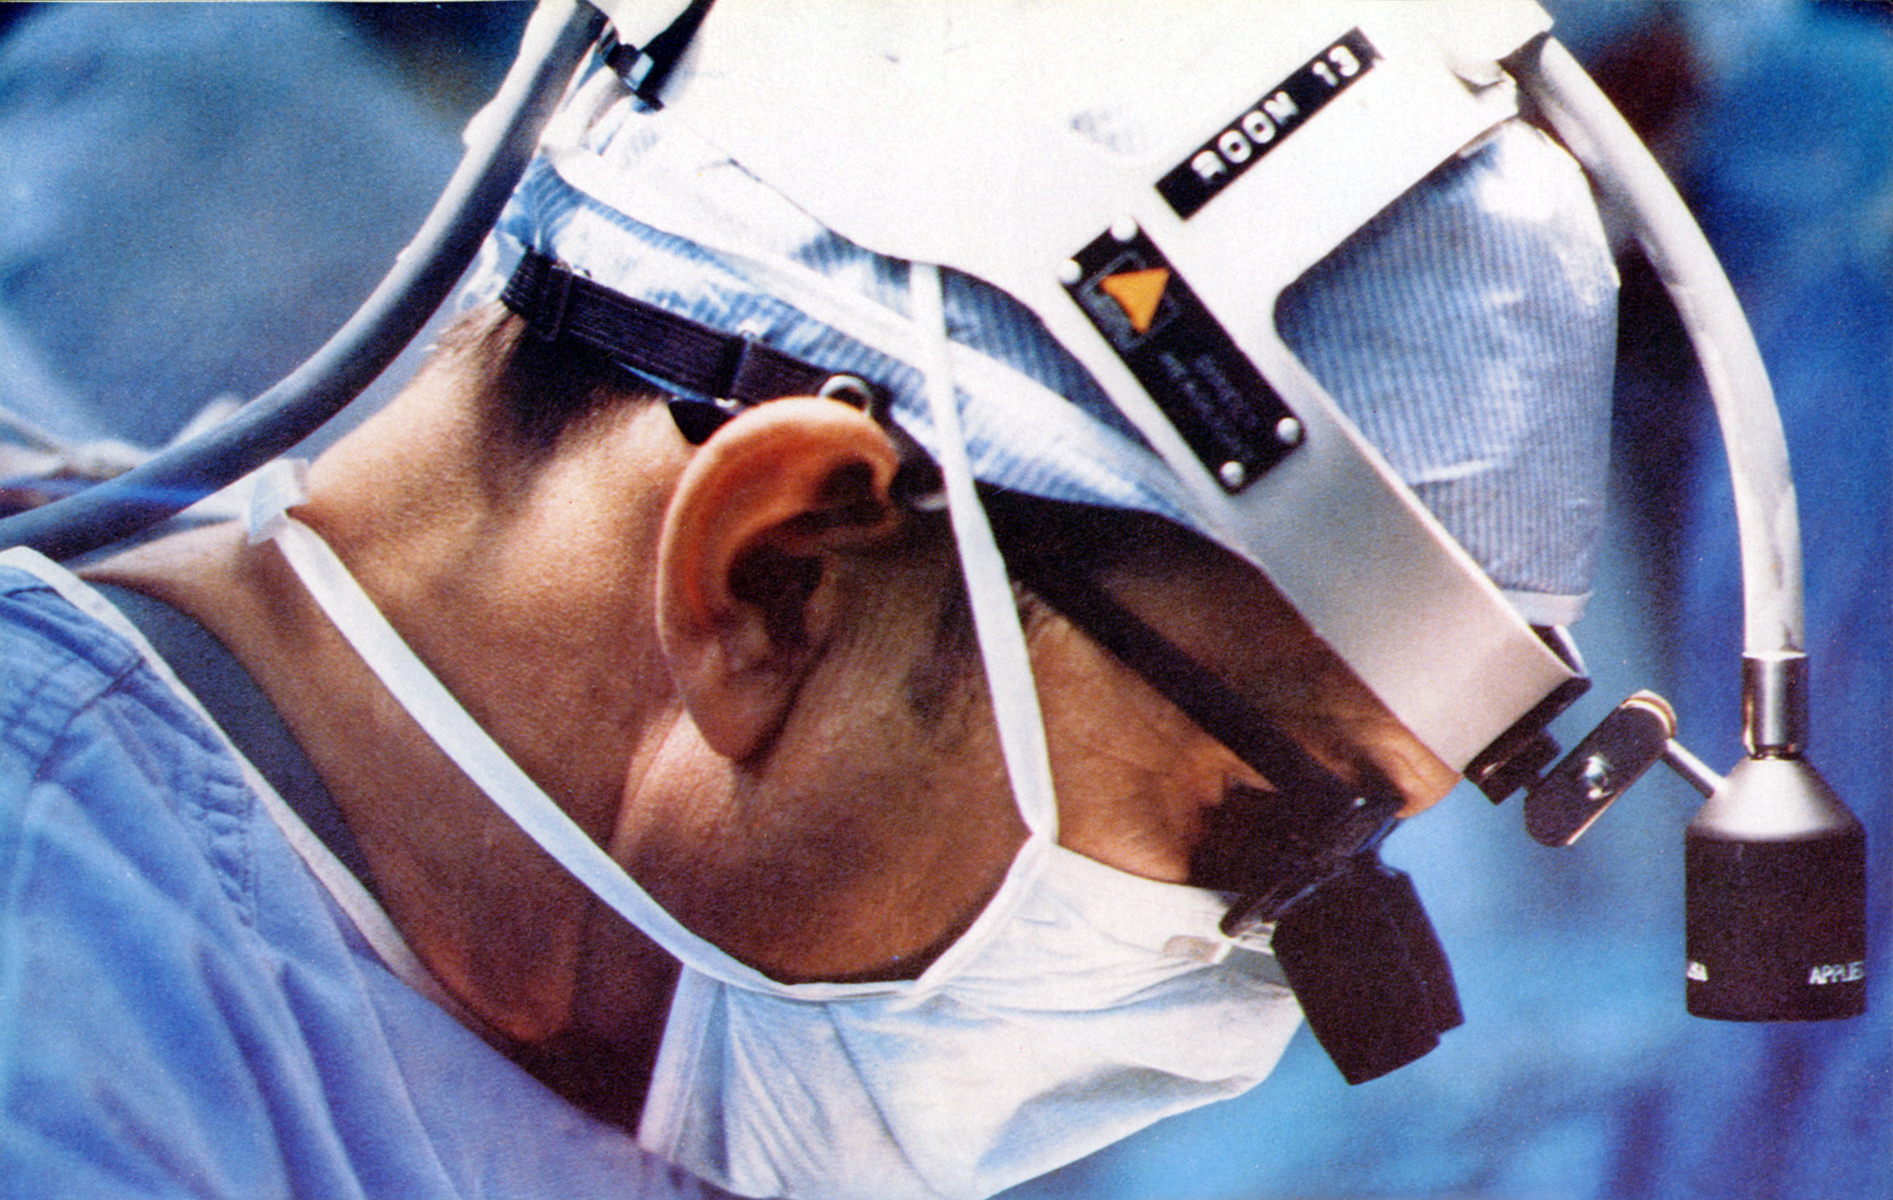 Dr. Russell M. Nelson during an operation.